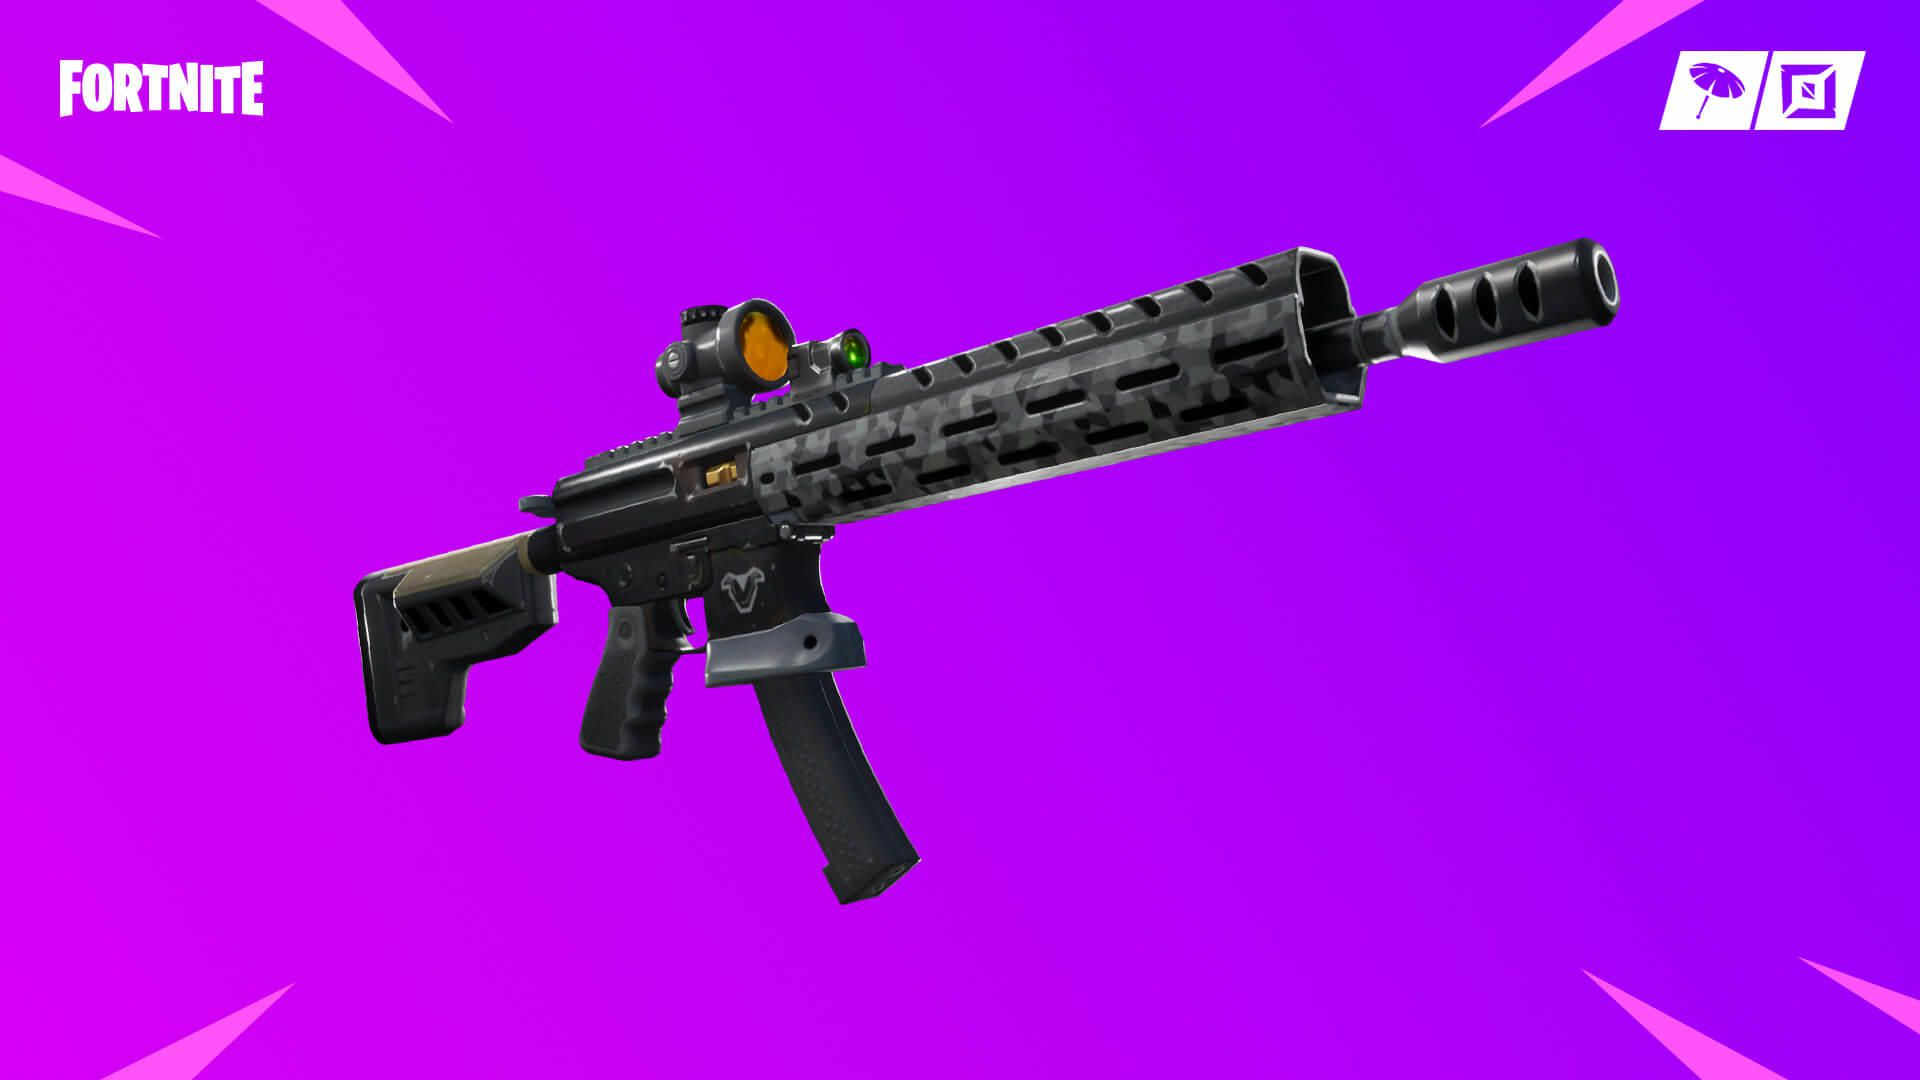 fortnite-patch-notes-v9-01-br-header-v9-01-00br-weapon-tacticalassaultrifle-social-1-1920x1080-5ce8461cb28de23166b991fc38967aa846148fbe